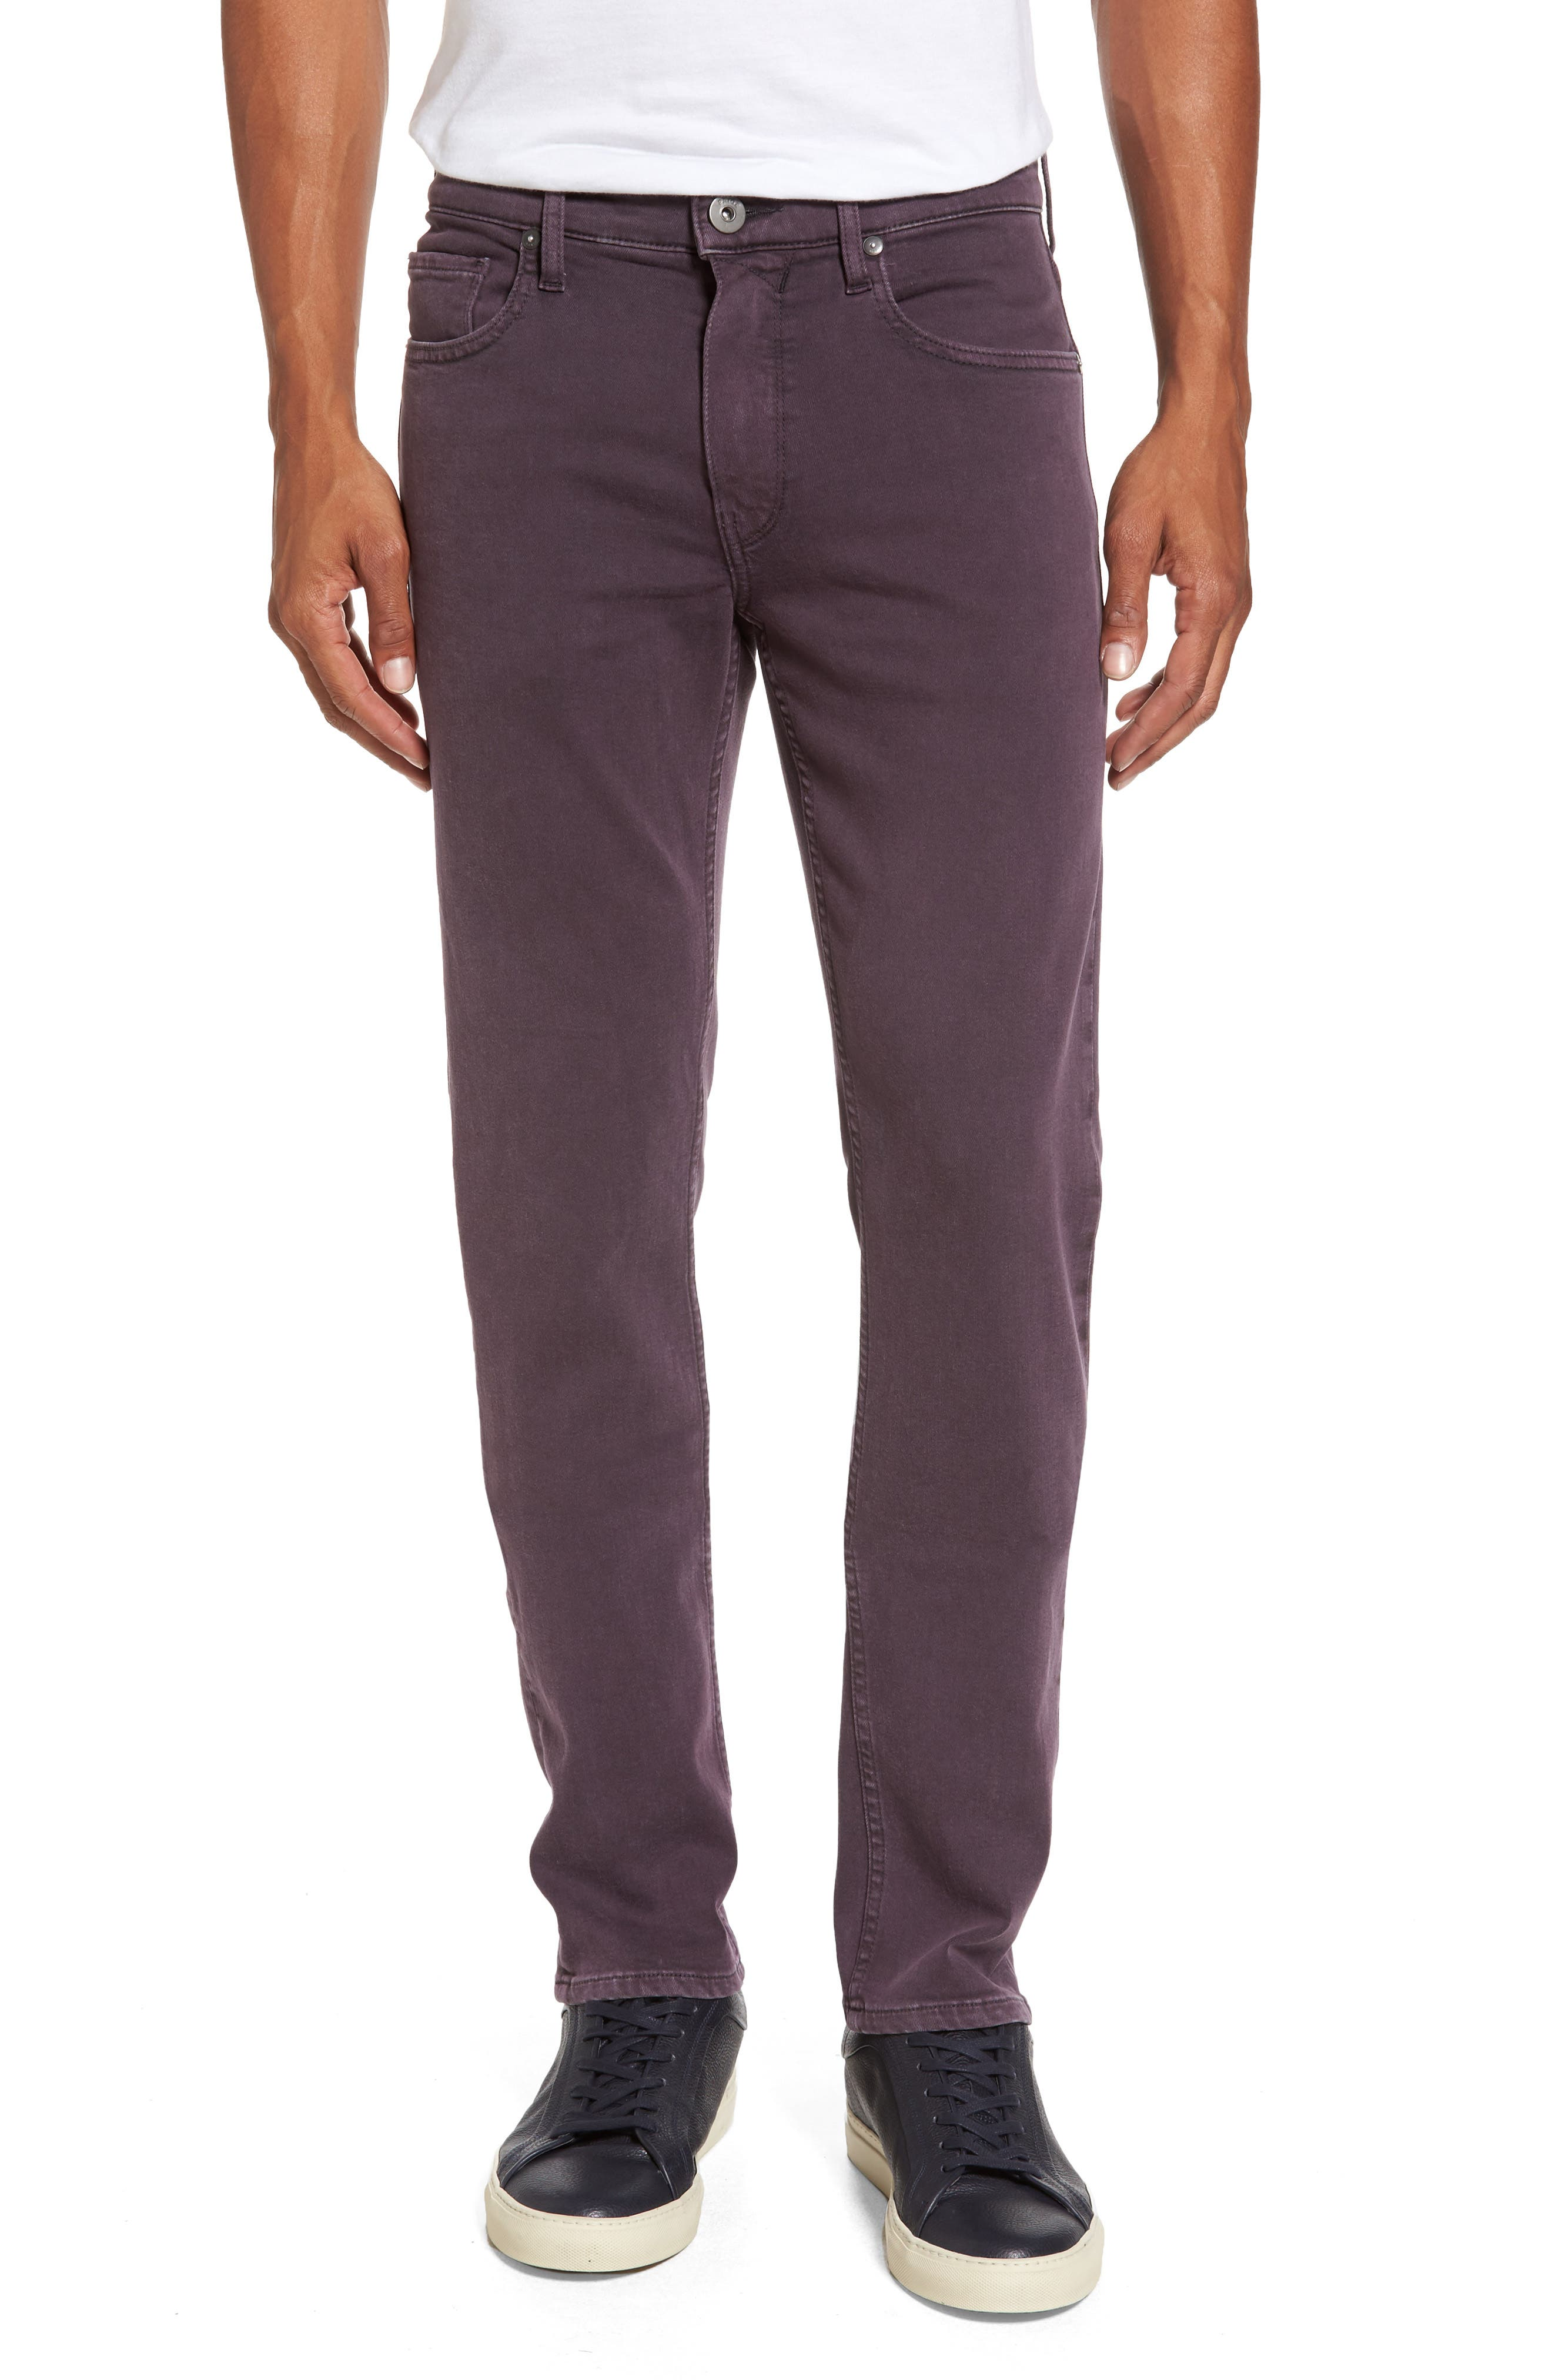 PAIGE Transcend - Federal Slim Straight Fit Jeans (Vintage Port)